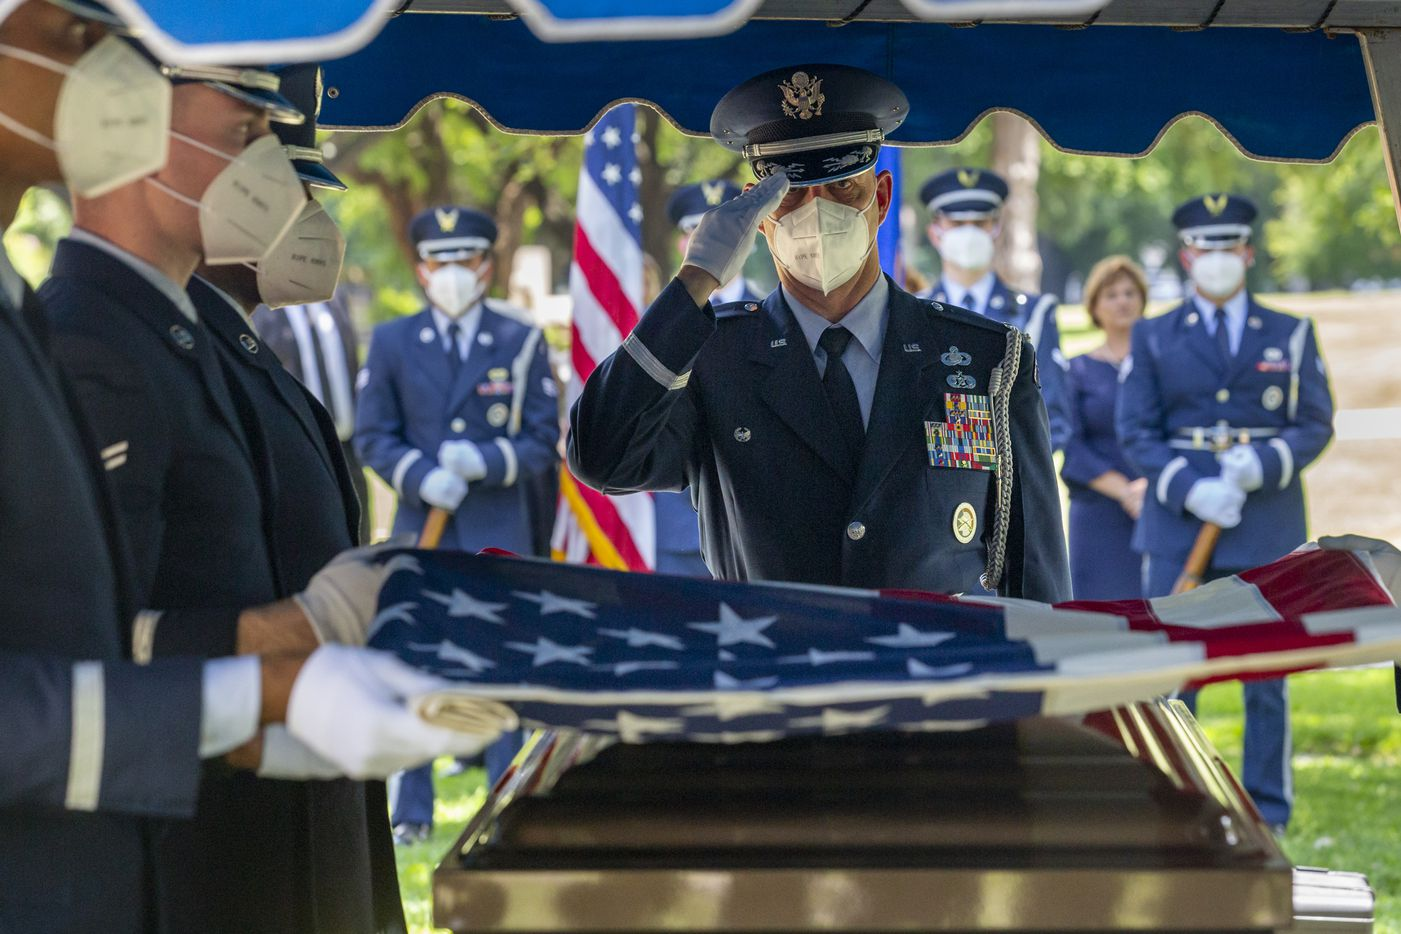 An Air Force Honor Guard member salutes during the funeral for Congressman Samuel Robert Johnson at the Restland Memorial Park in Dallas on Monday, June 8, 2020. In addition to 28 years of service as a congressional representative for Texas' 3rd District, Johnson was also a fighter pilot, decorated combat veteran and a former Prisoner of War.